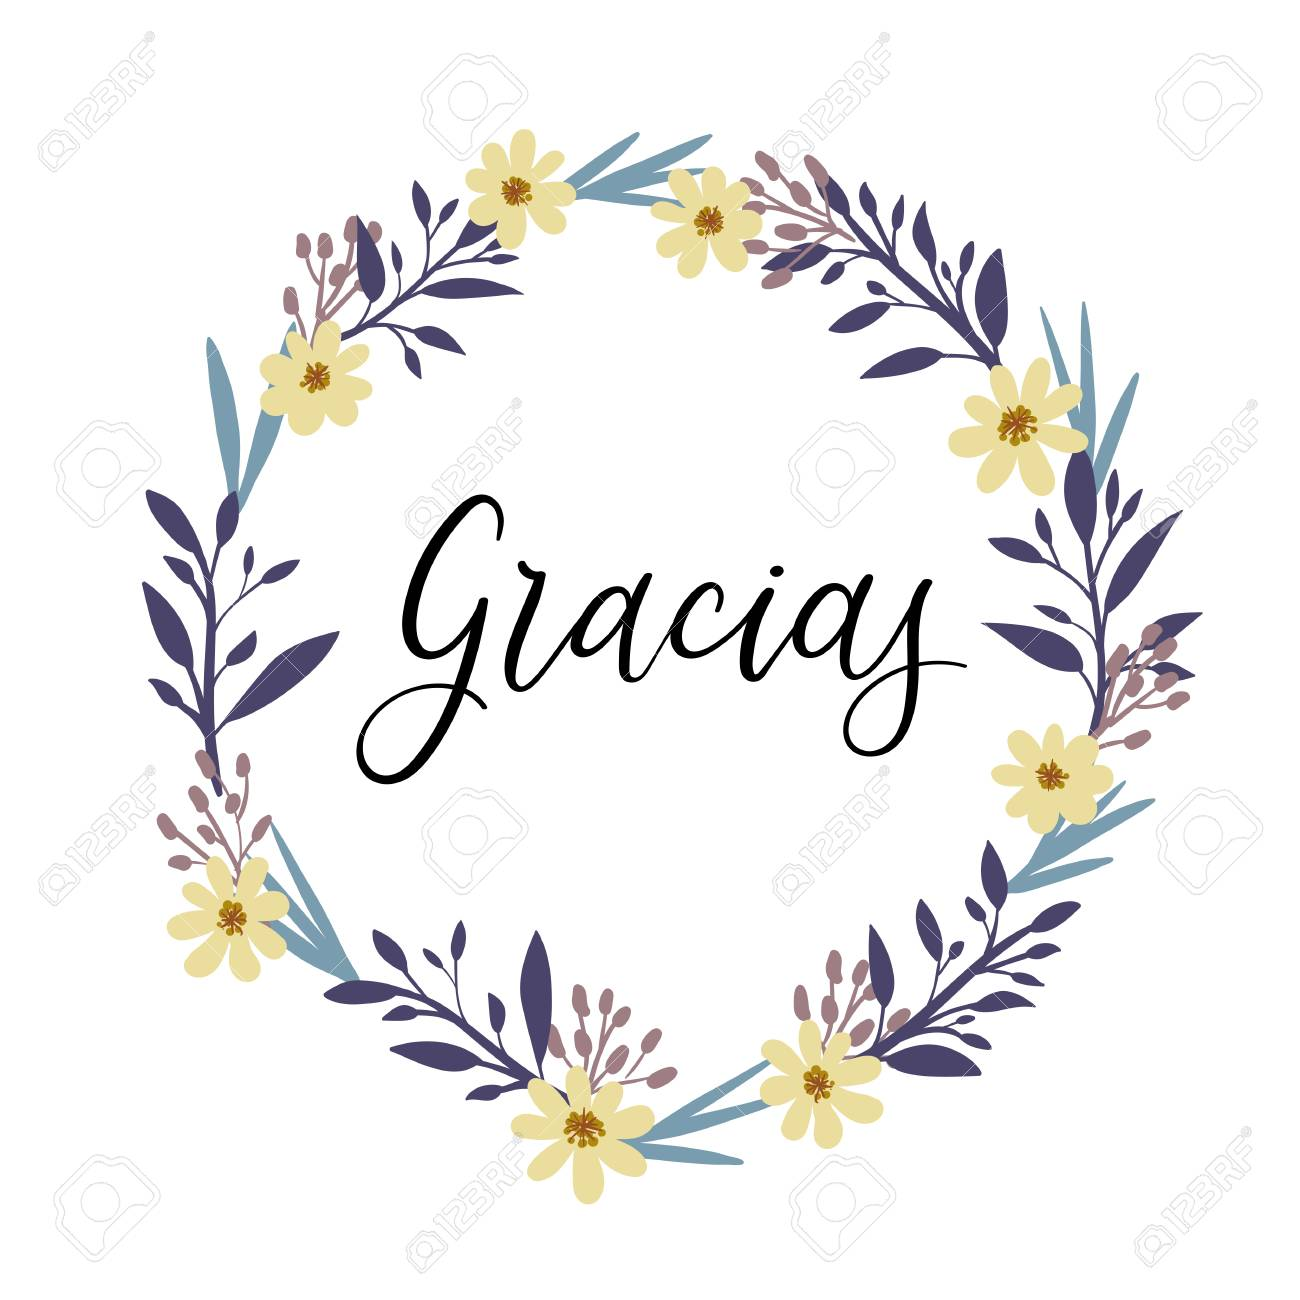 Gracias thank you in spanish calligraphy greeting card vector thank you in spanish calligraphy greeting card vector illustration stock vector 77678993 m4hsunfo